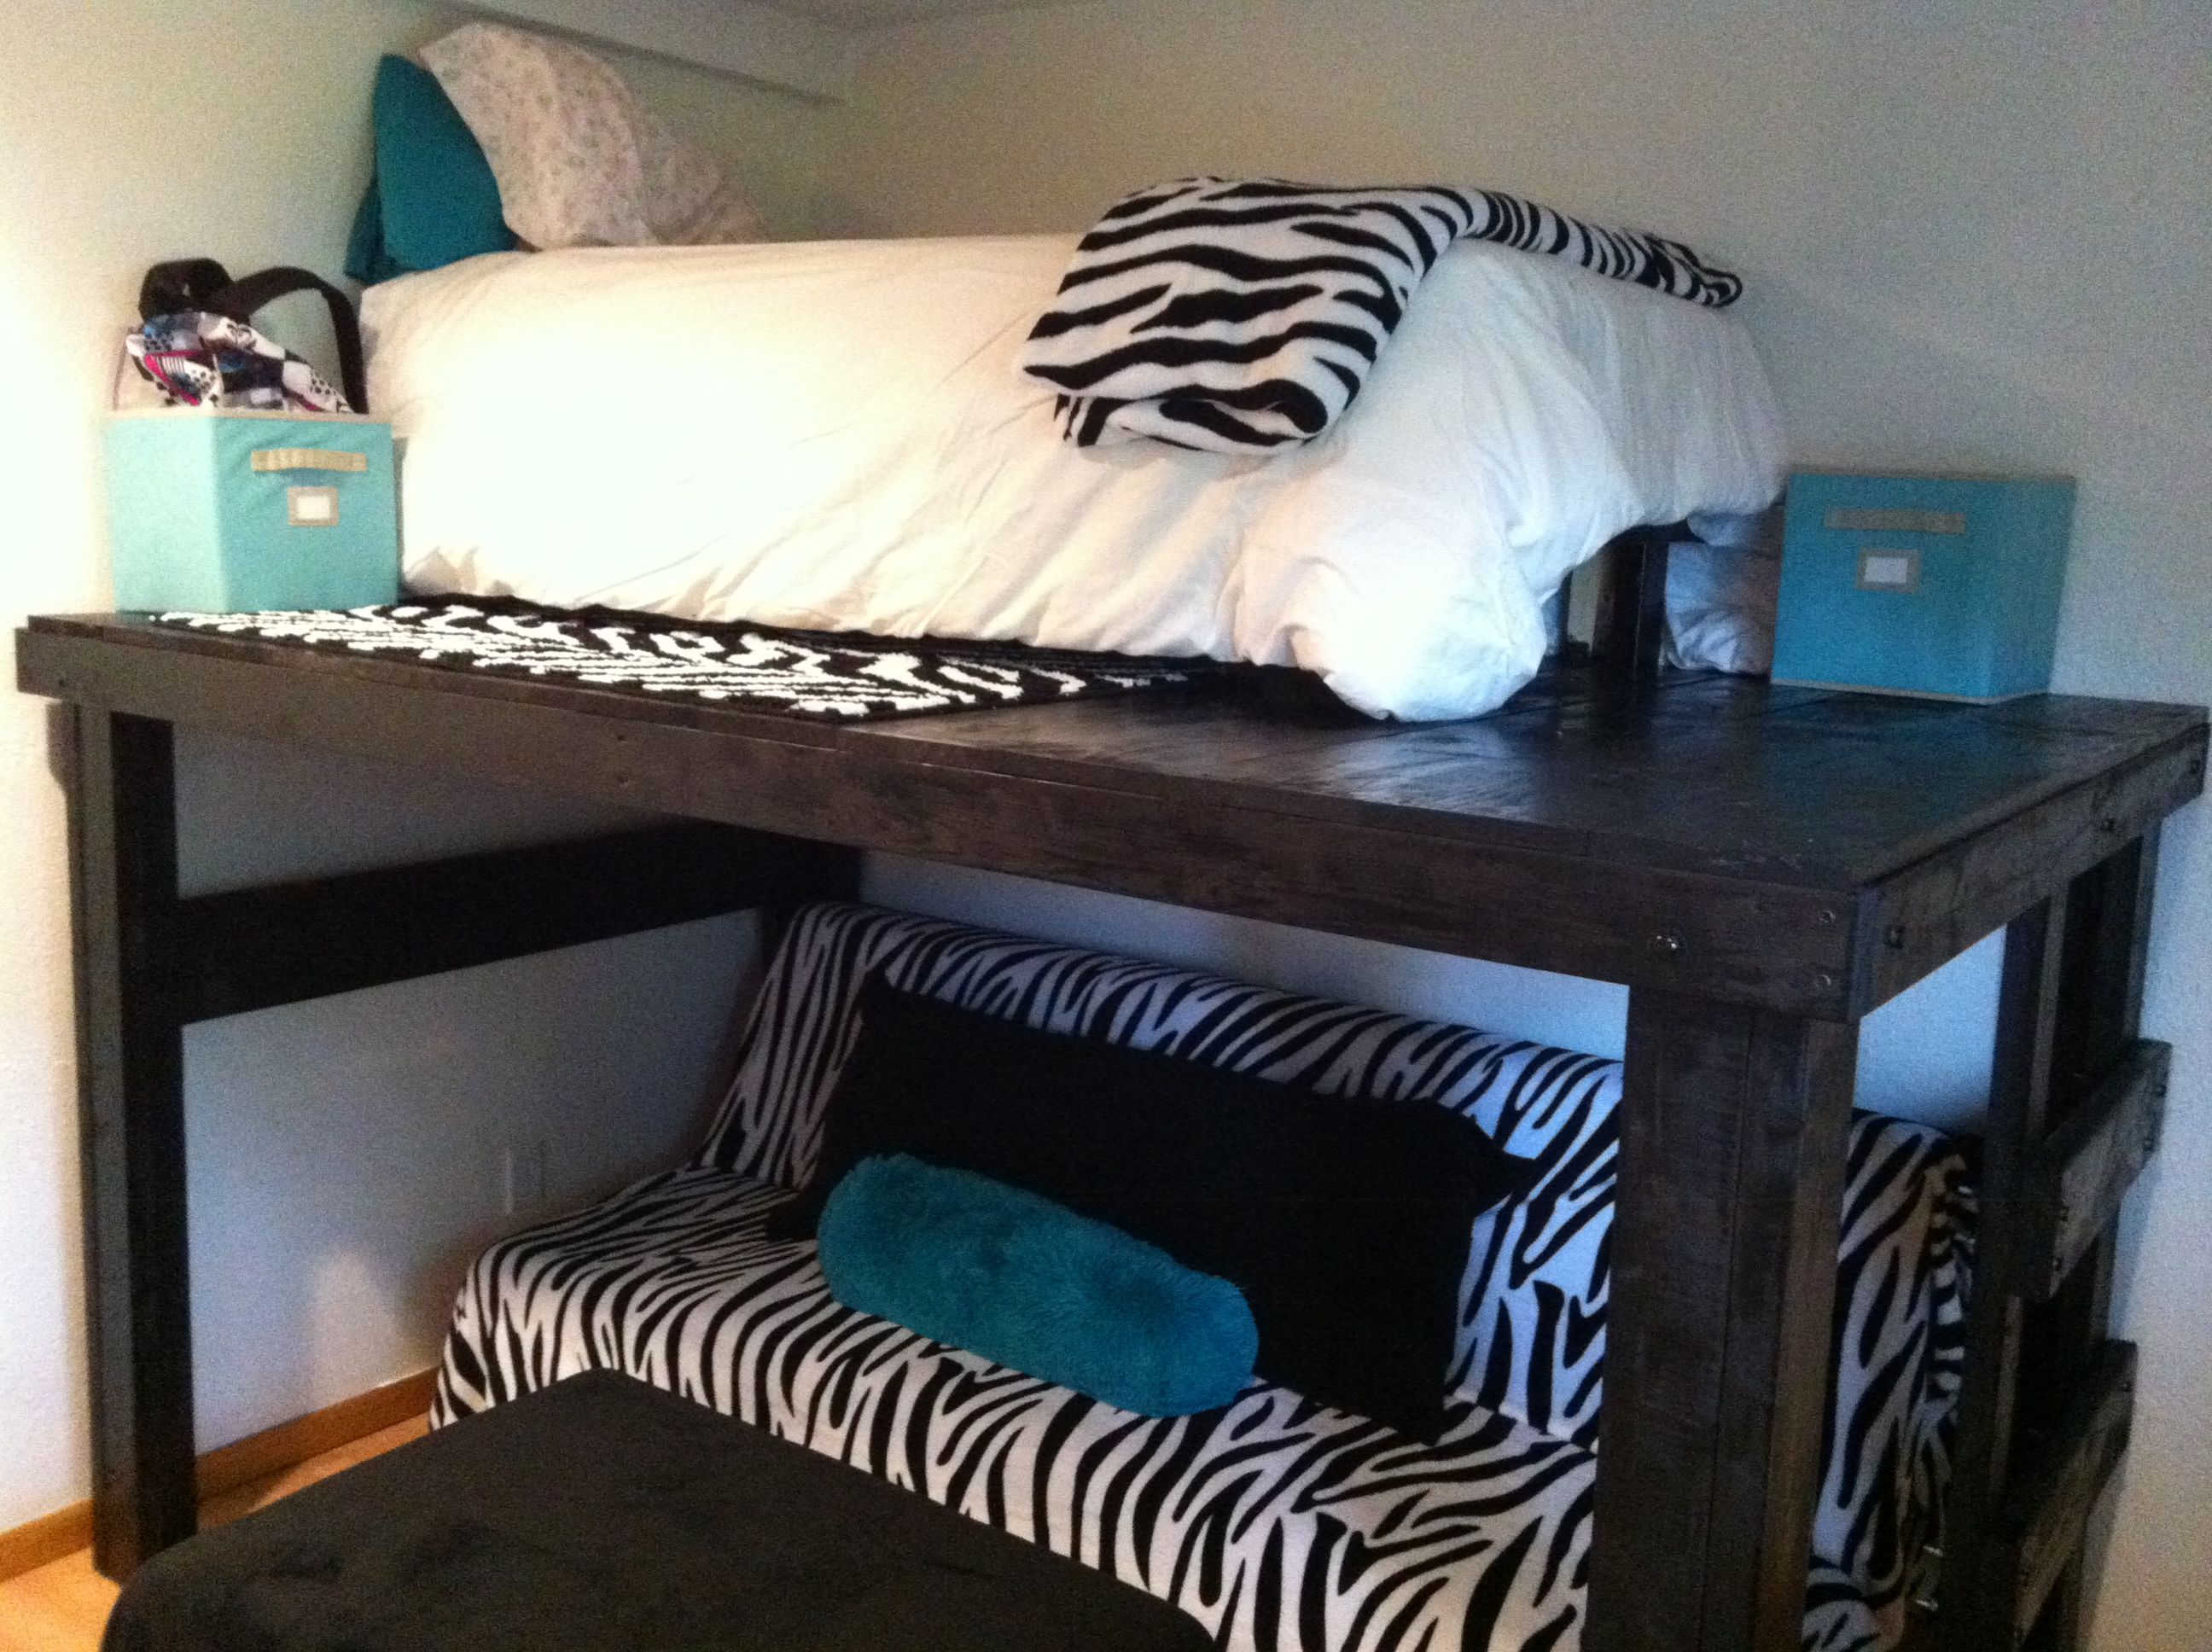 Zebra bed. What a weekend should be   Greg Skoog